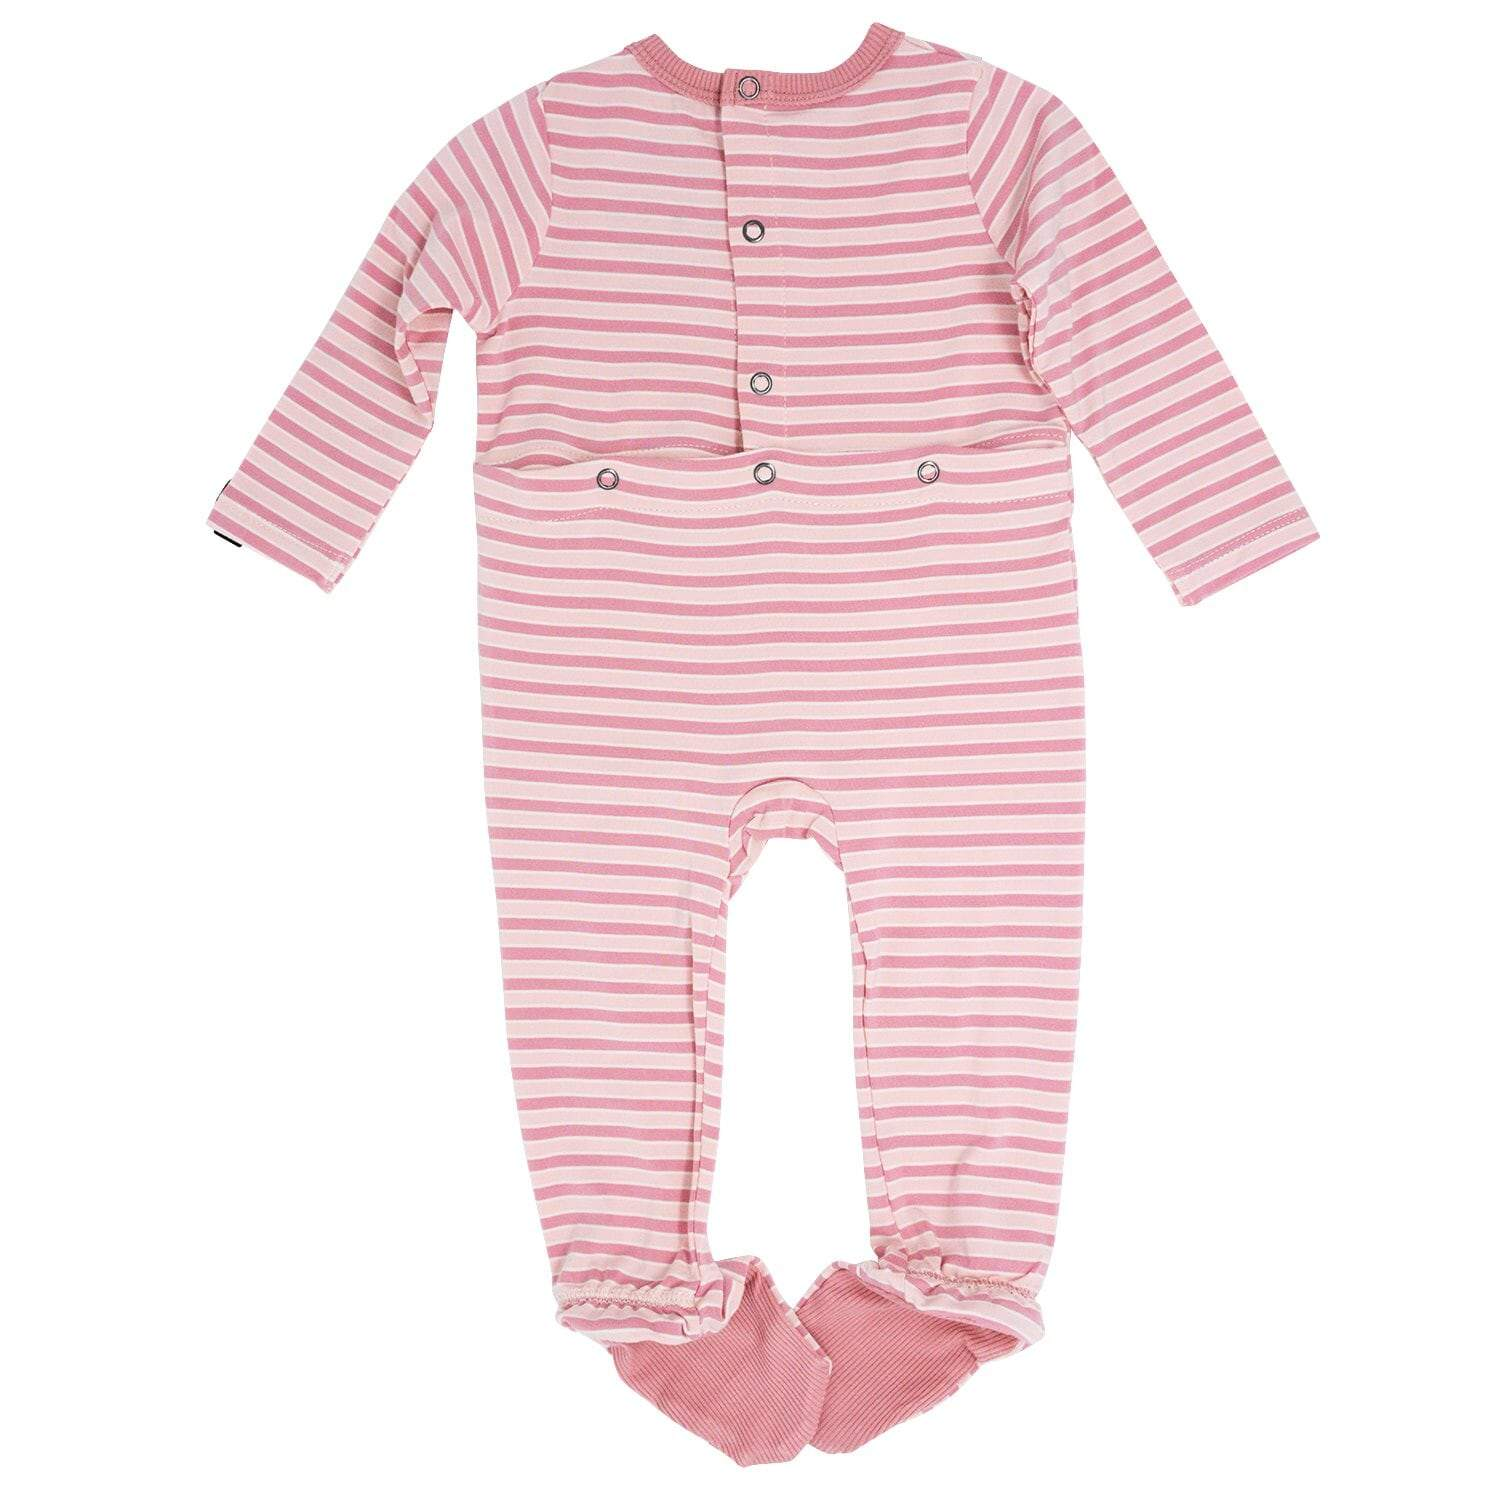 Footie with Bum Flap - Pink Stripe - Sweet Bamboo